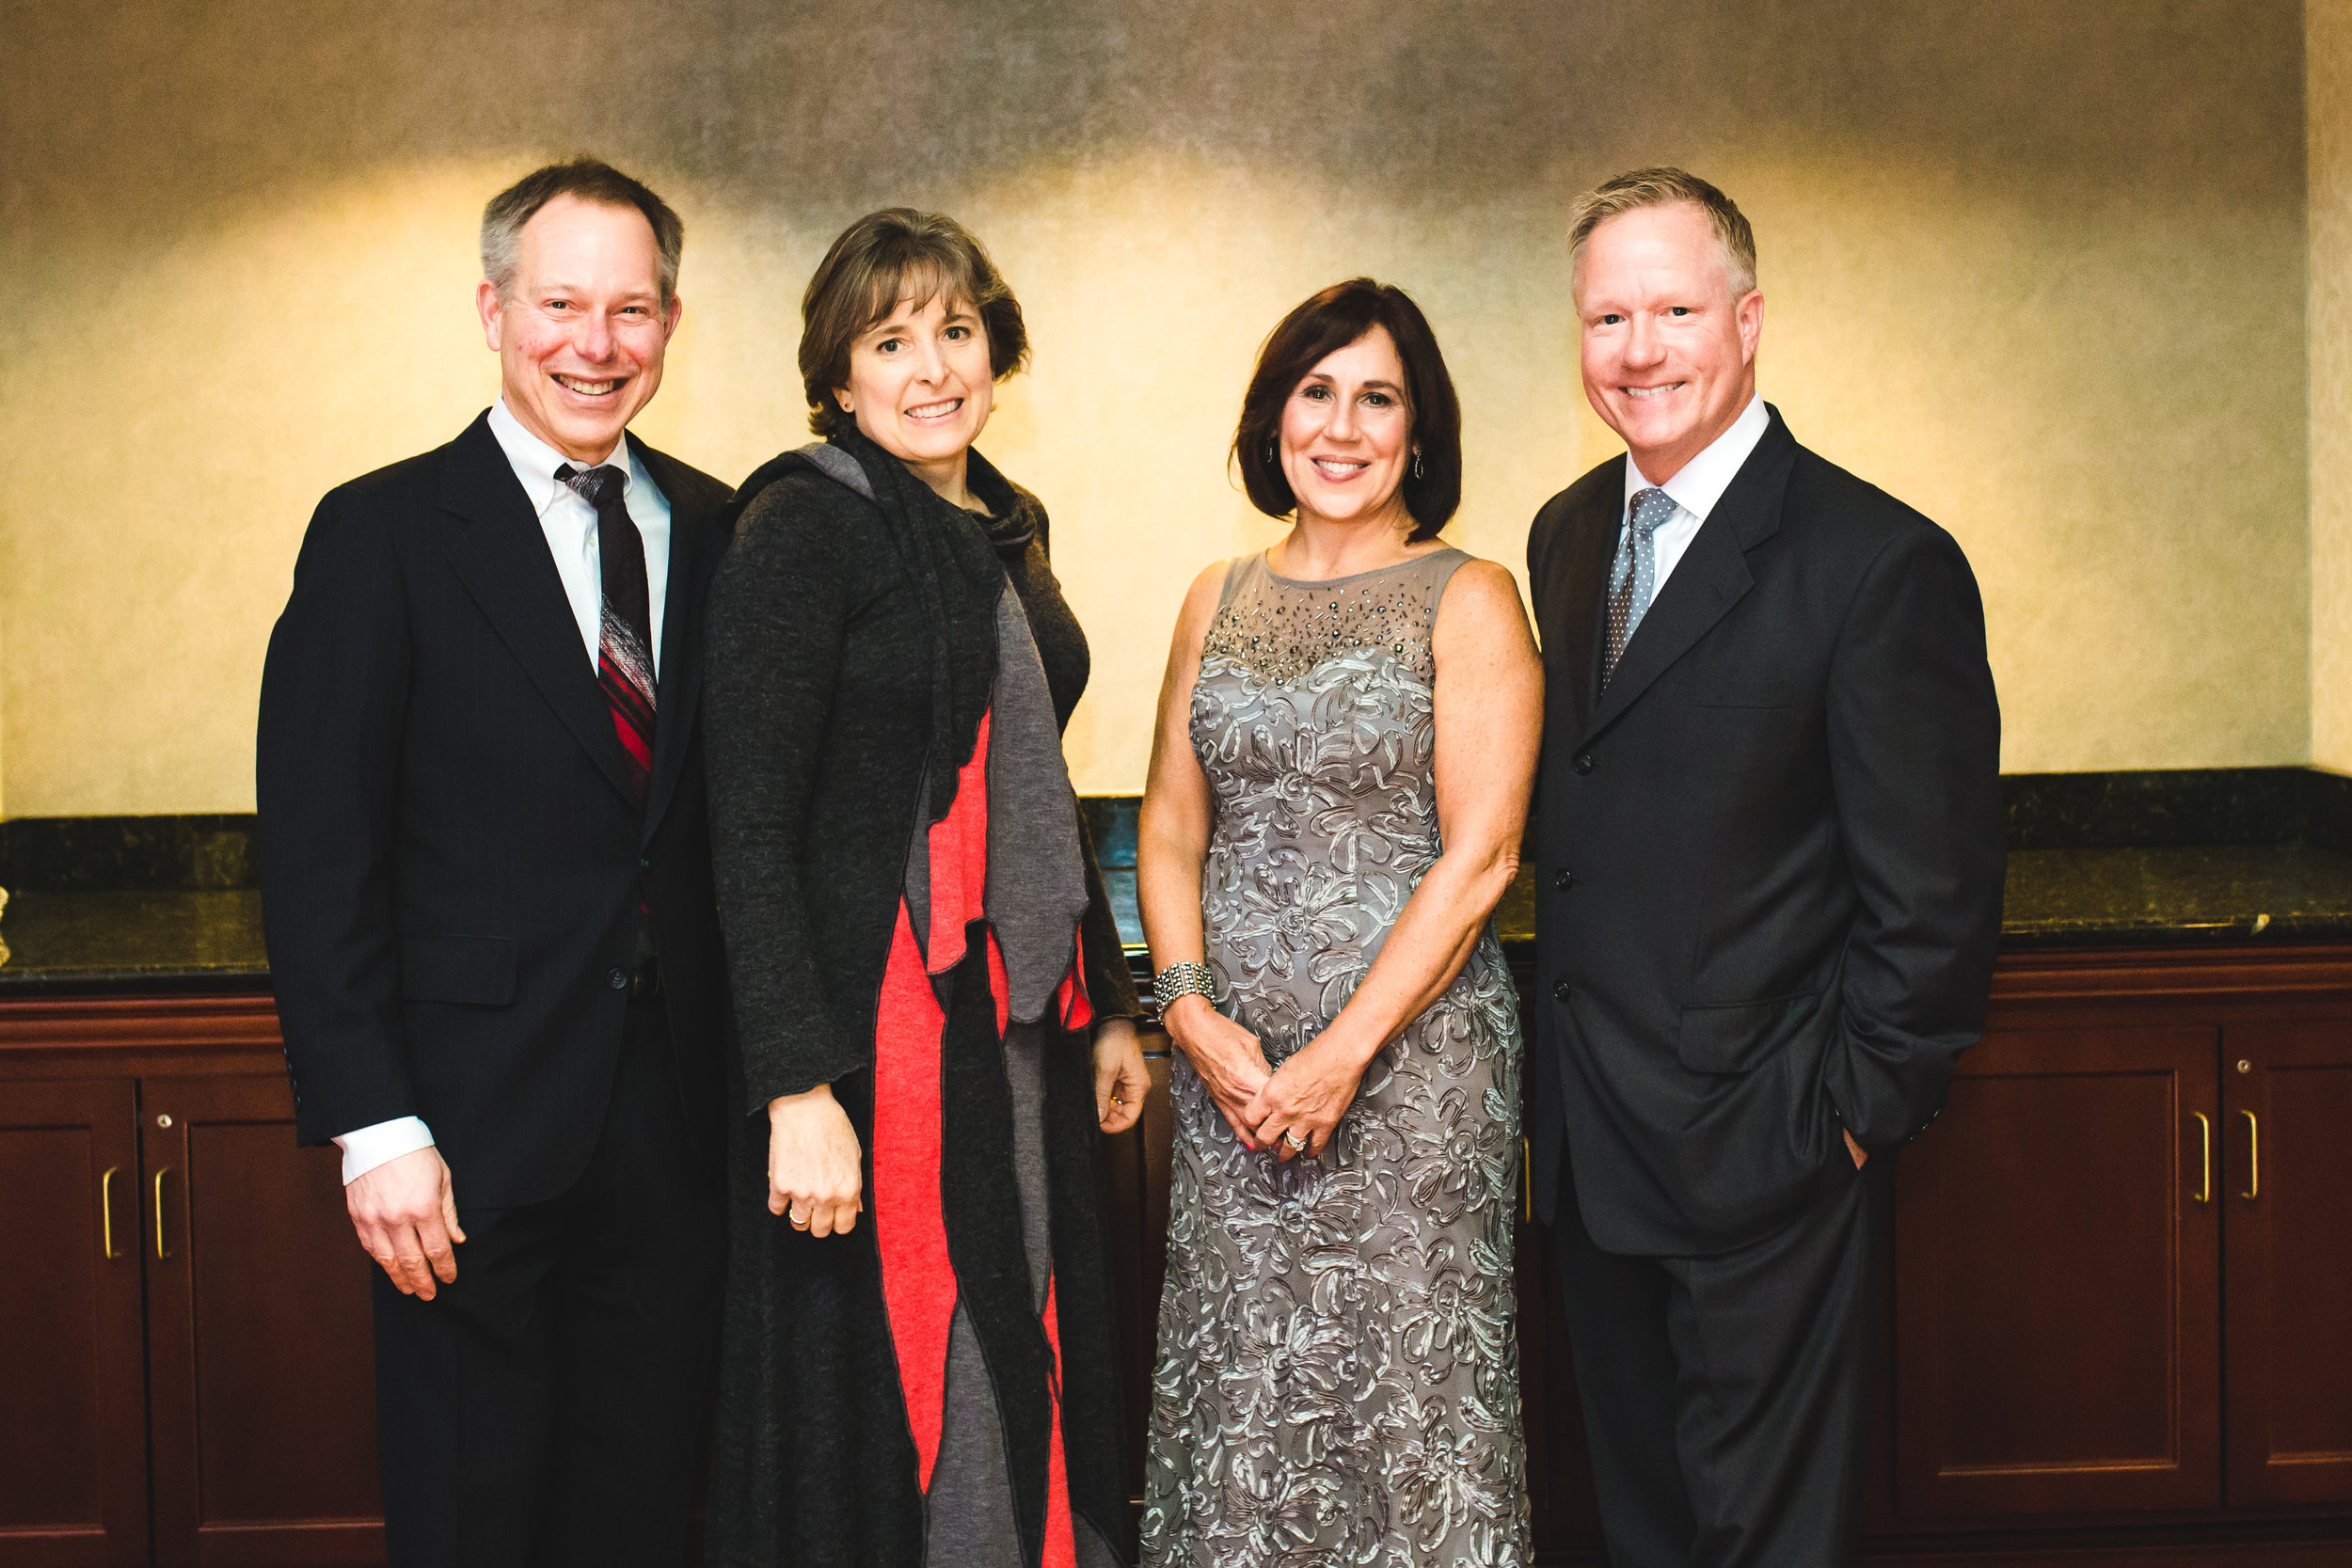 Photo from 2016 Fellowship Housing Gala. From left to right; David and Peggy Shumway, Ginny and John Opshal.